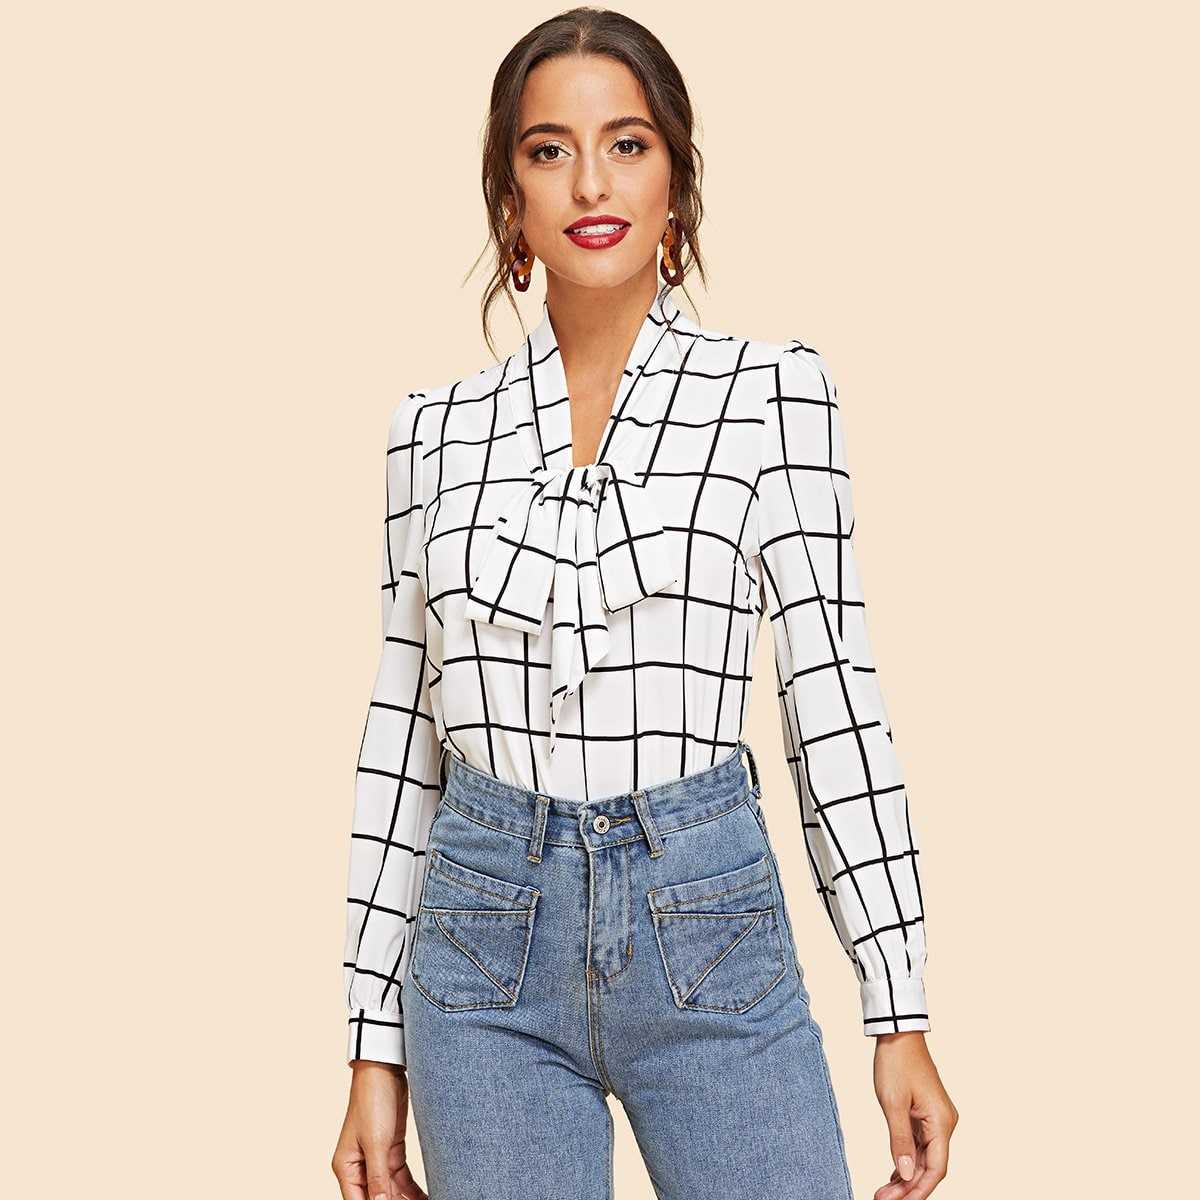 Tie Neck Grid Blouse in Black and White by ROMWE on GOOFASH